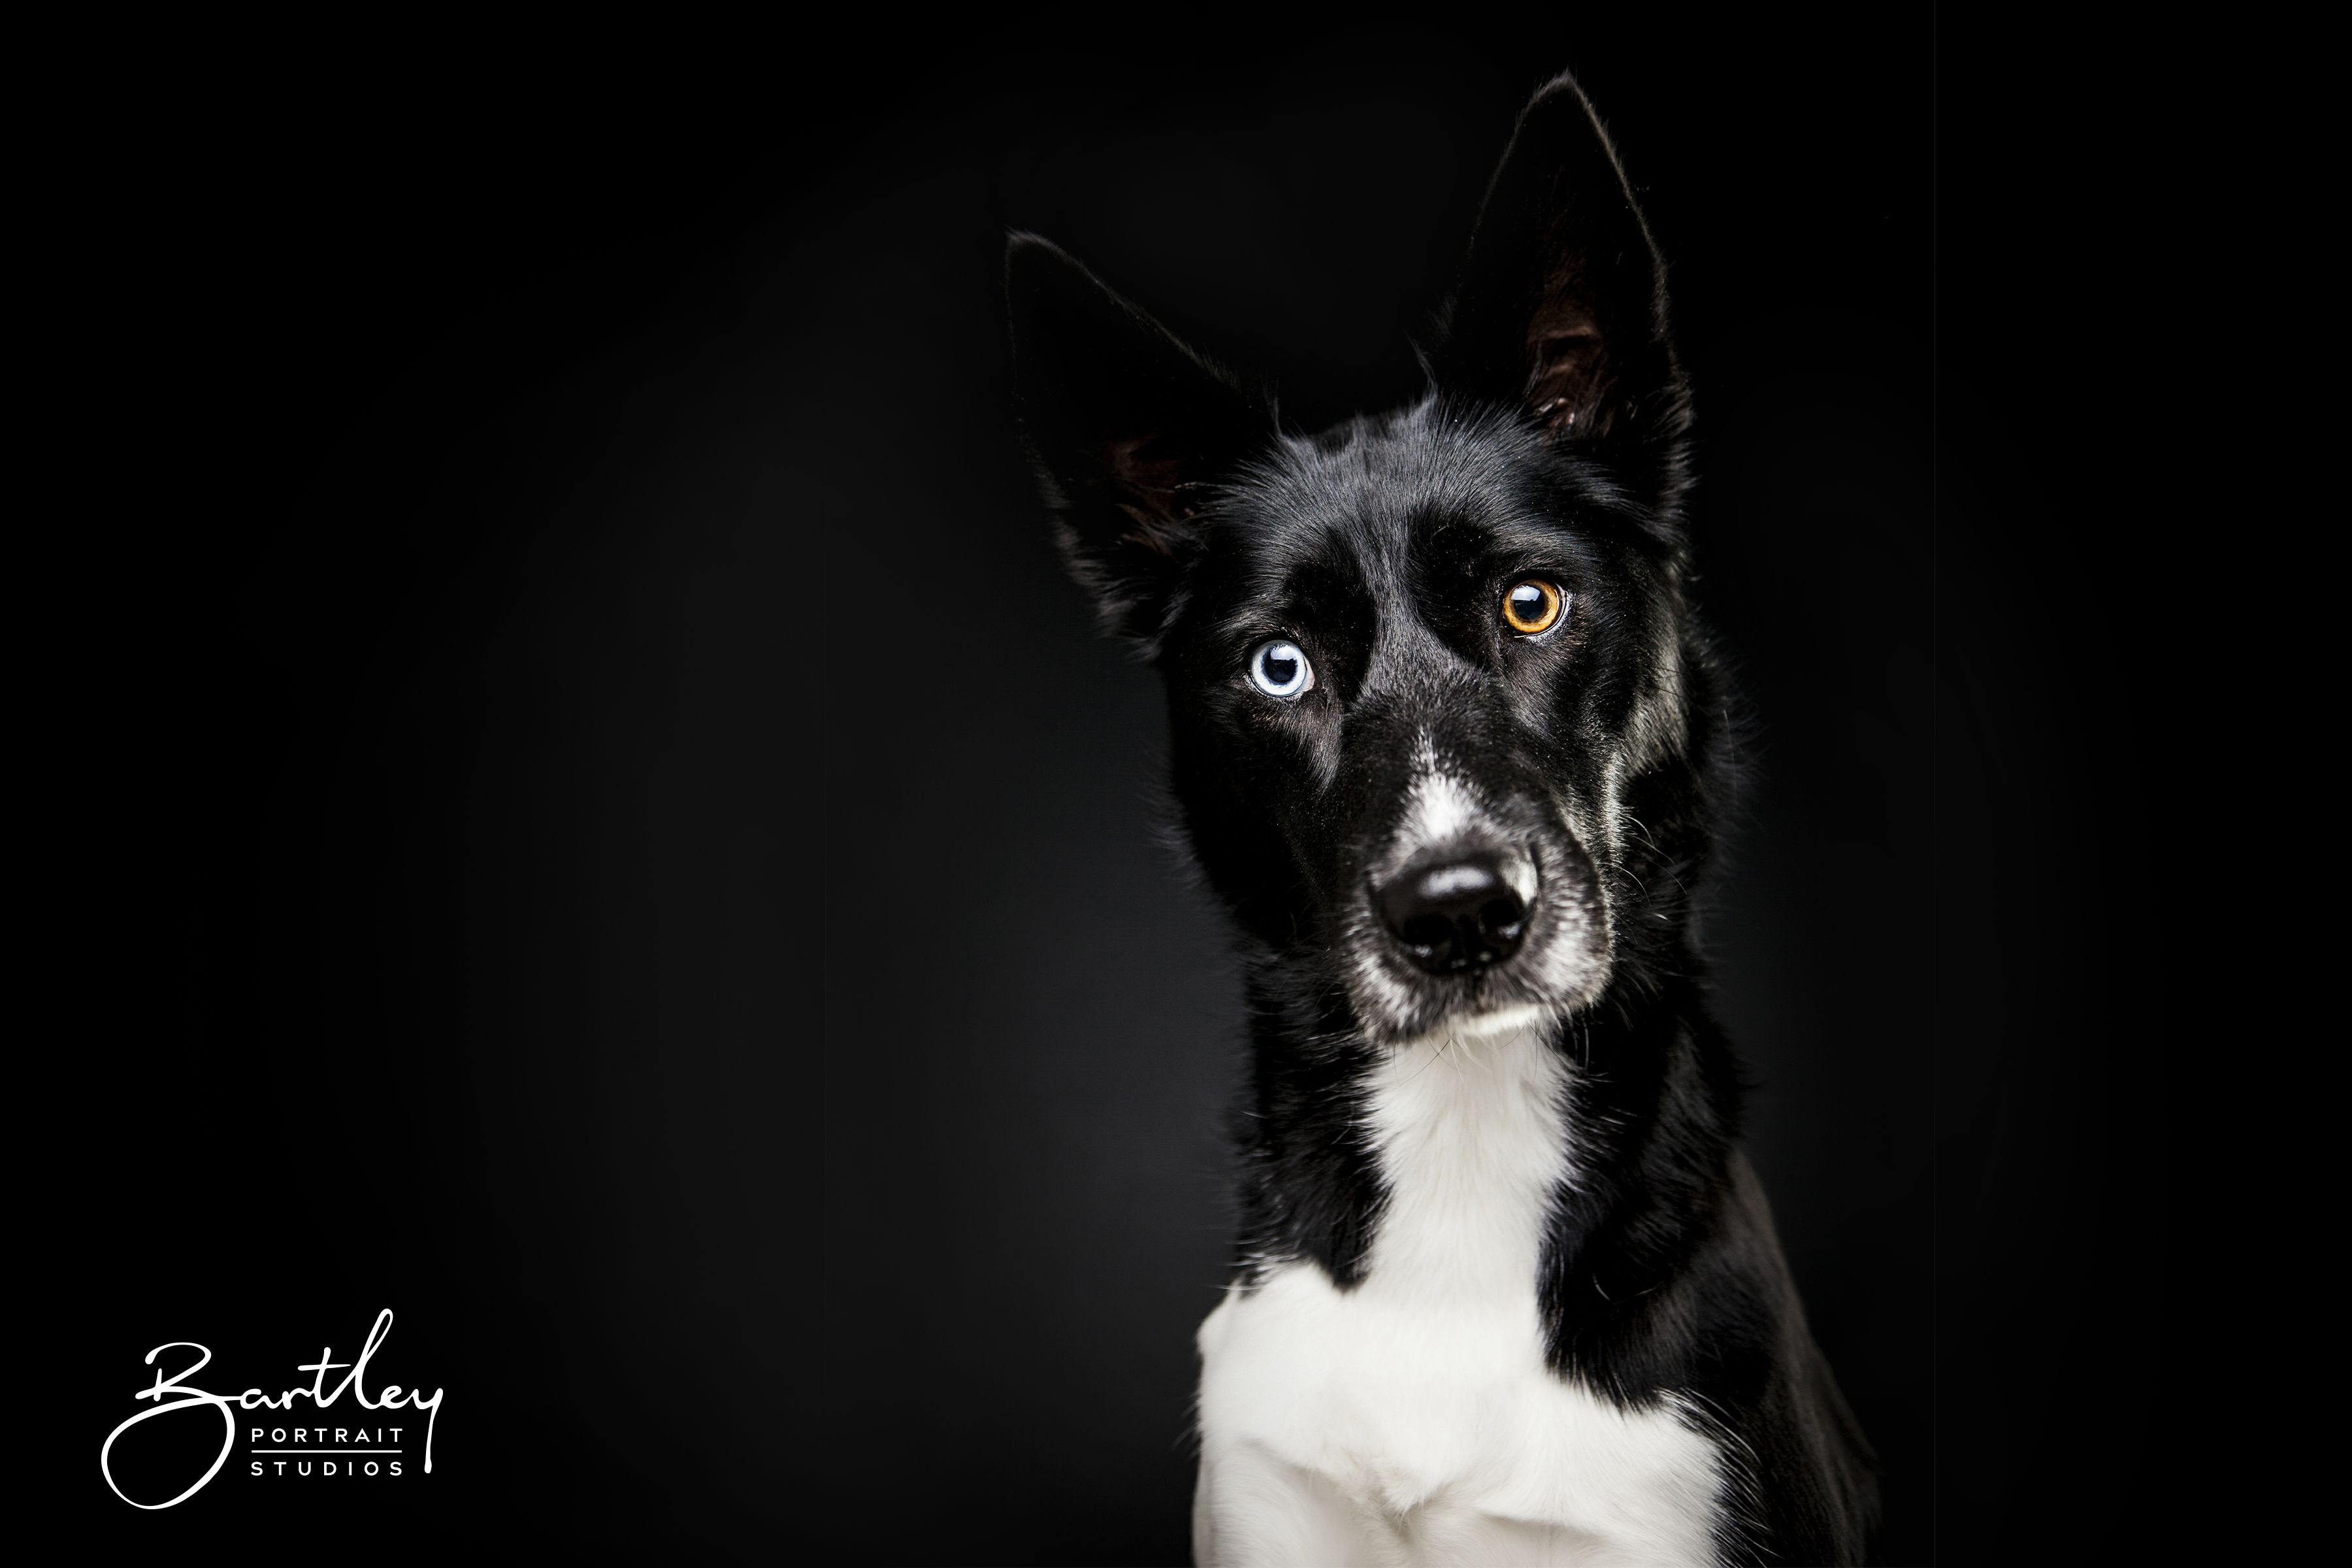 Dog portraits studio dog photography bartley portrait studios manchester black background